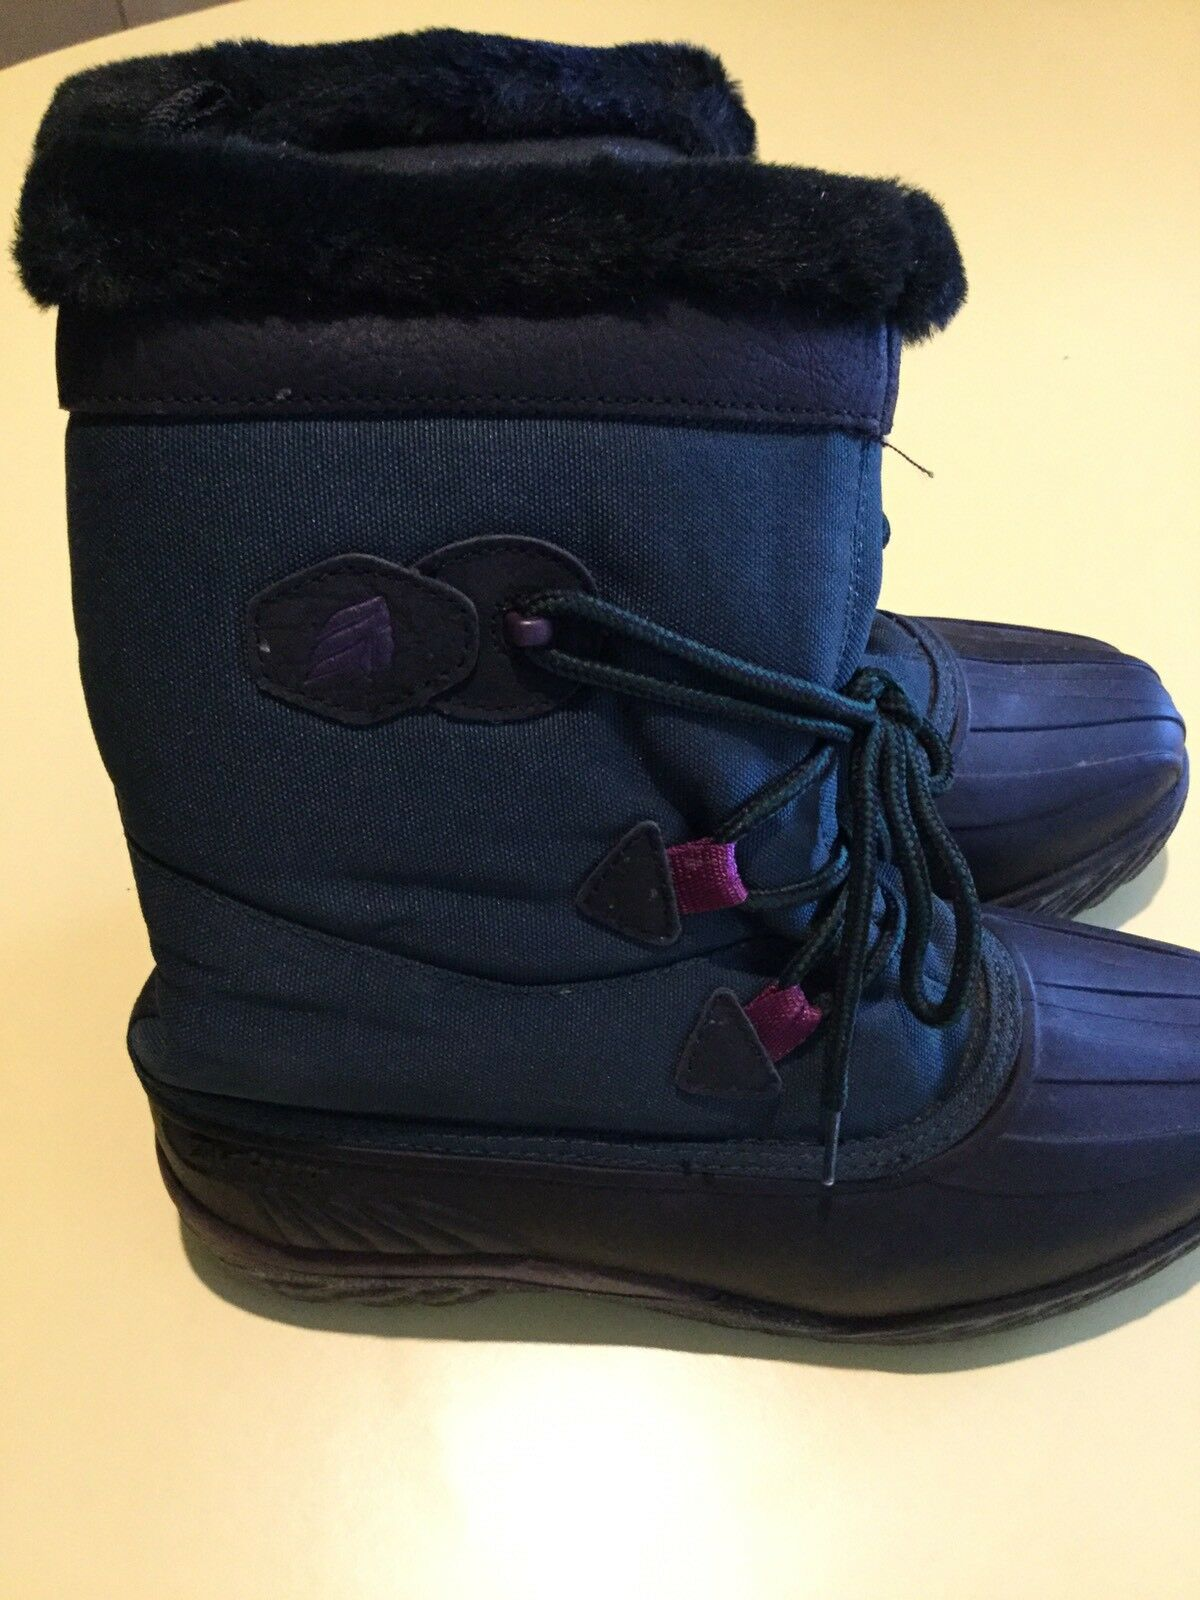 Women's Winter Boots with Liners - Green/Black - Size 8 - LaCrosse